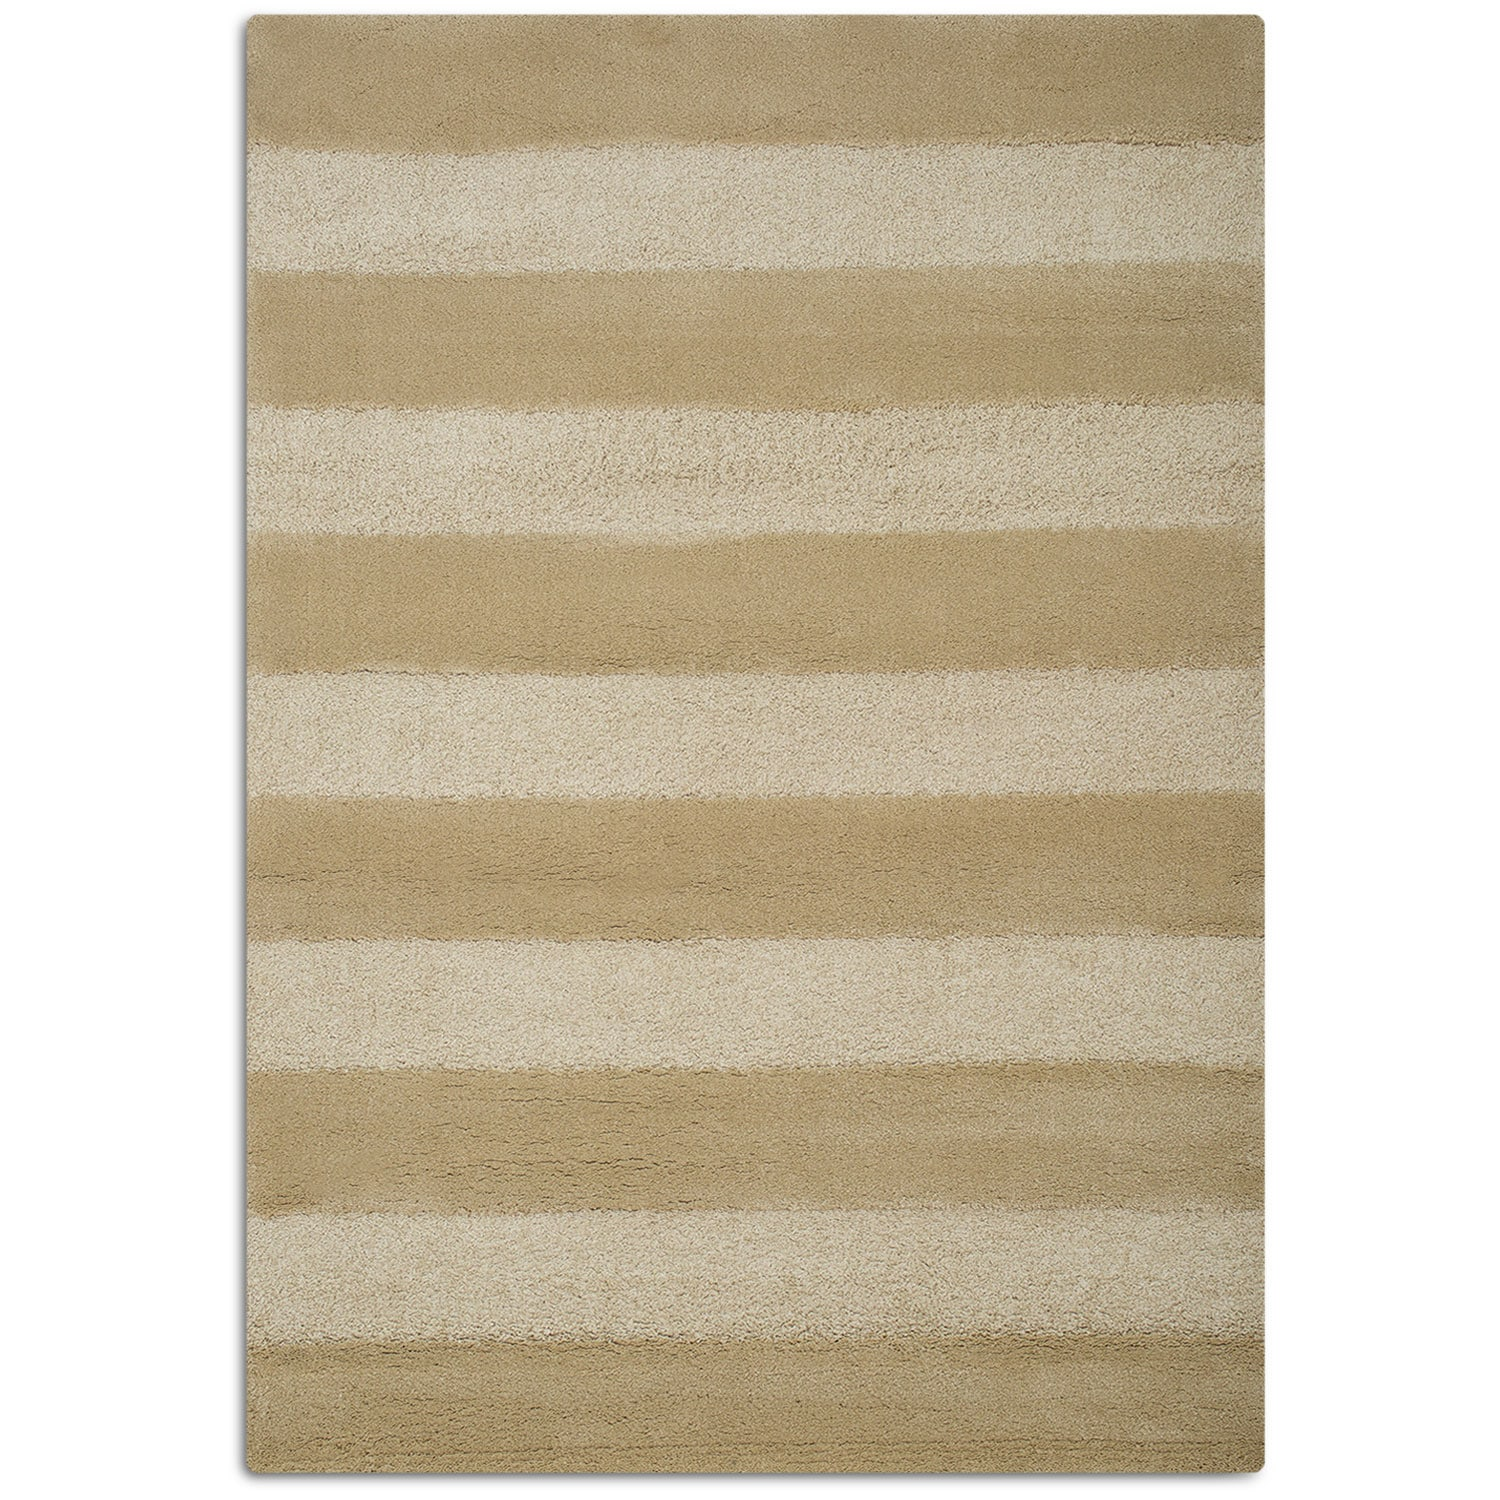 Rugs - Elements 5' x 8' Area Rug - Ivory